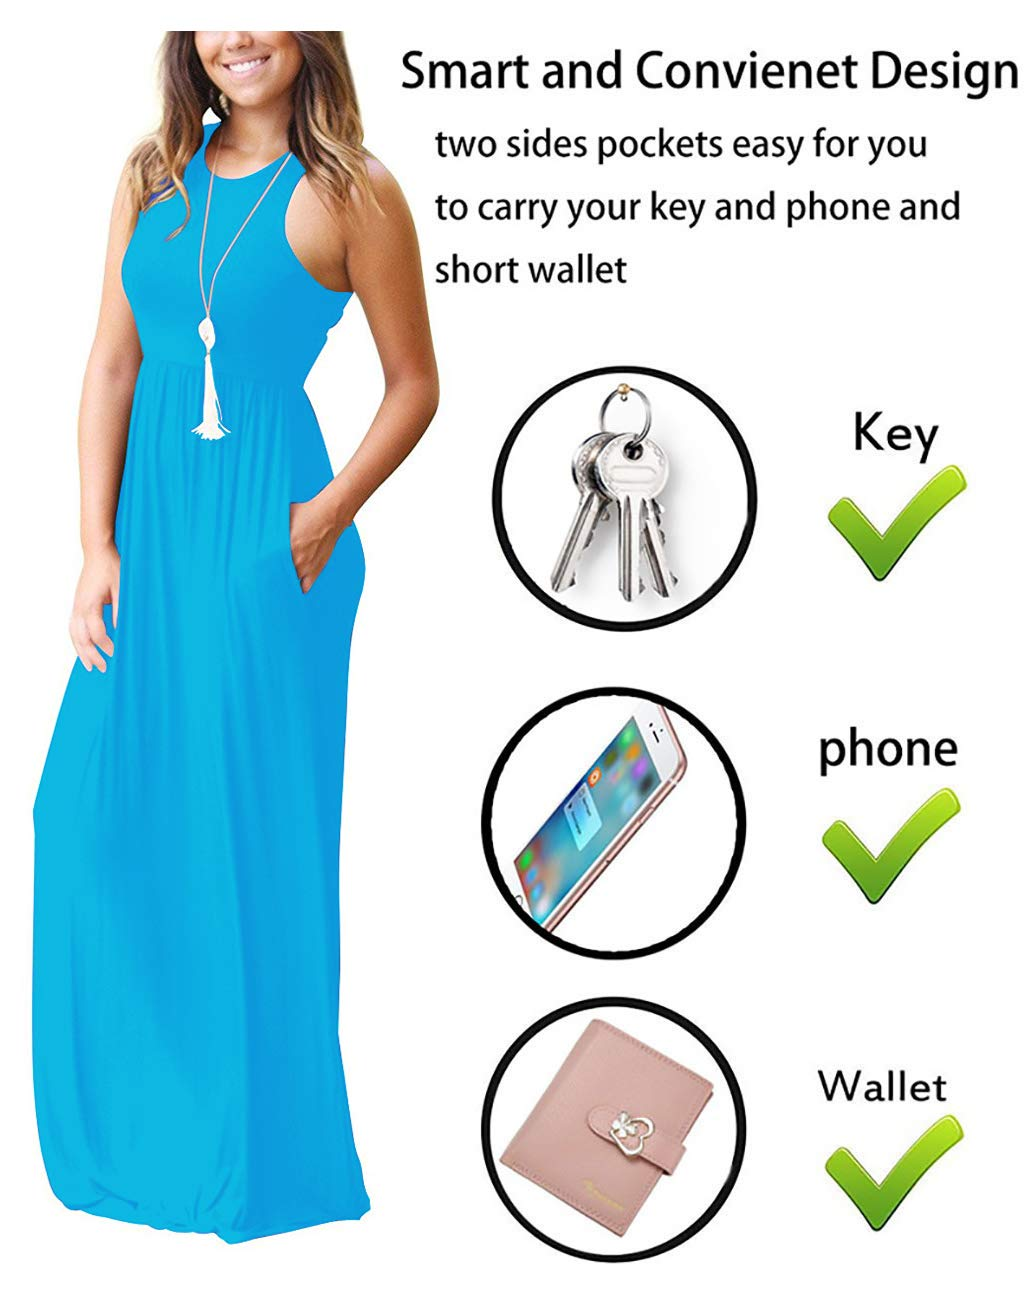 3739886caba0 GRECERELLE Women's Sleeveless Racerback Loose Plain Maxi Dresses Casual  Long Dresses with Pockets Nile Blue-XL < Dresses < Clothing, Shoes &  Jewelry - tibs